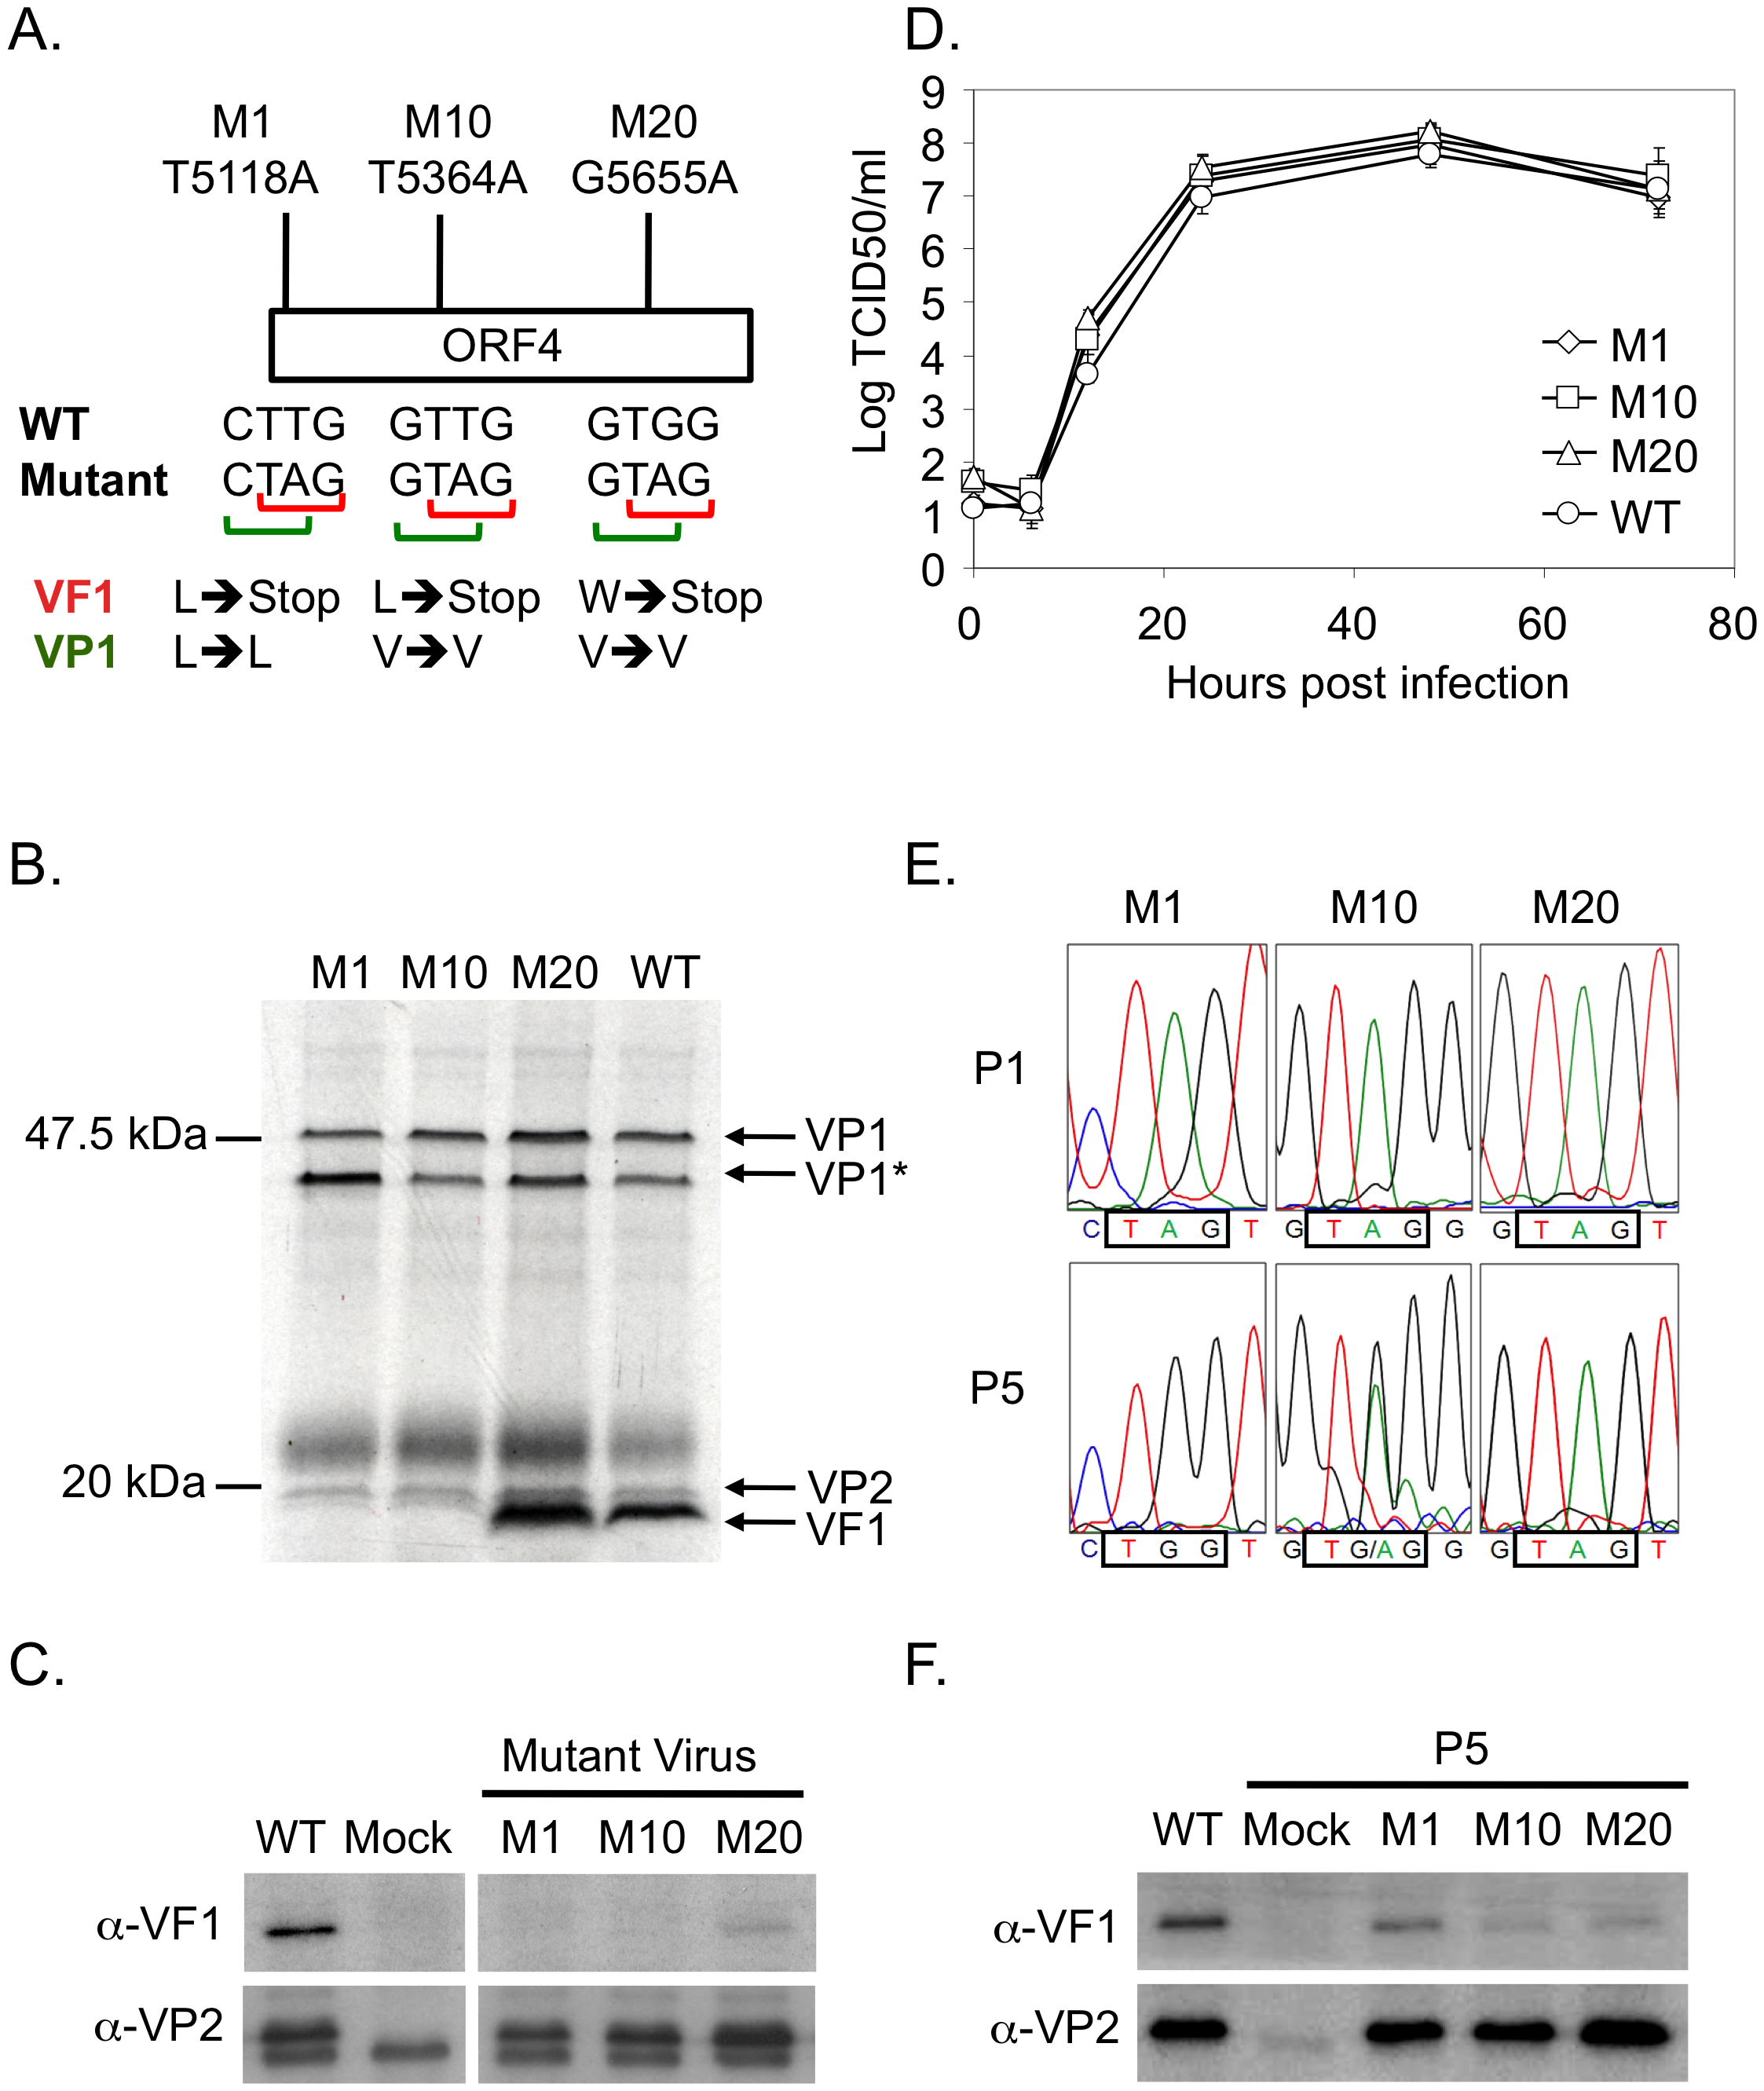 VF1 is not required for murine norovirus replication in tissue culture although there is a 'fitness cost' to the virus.